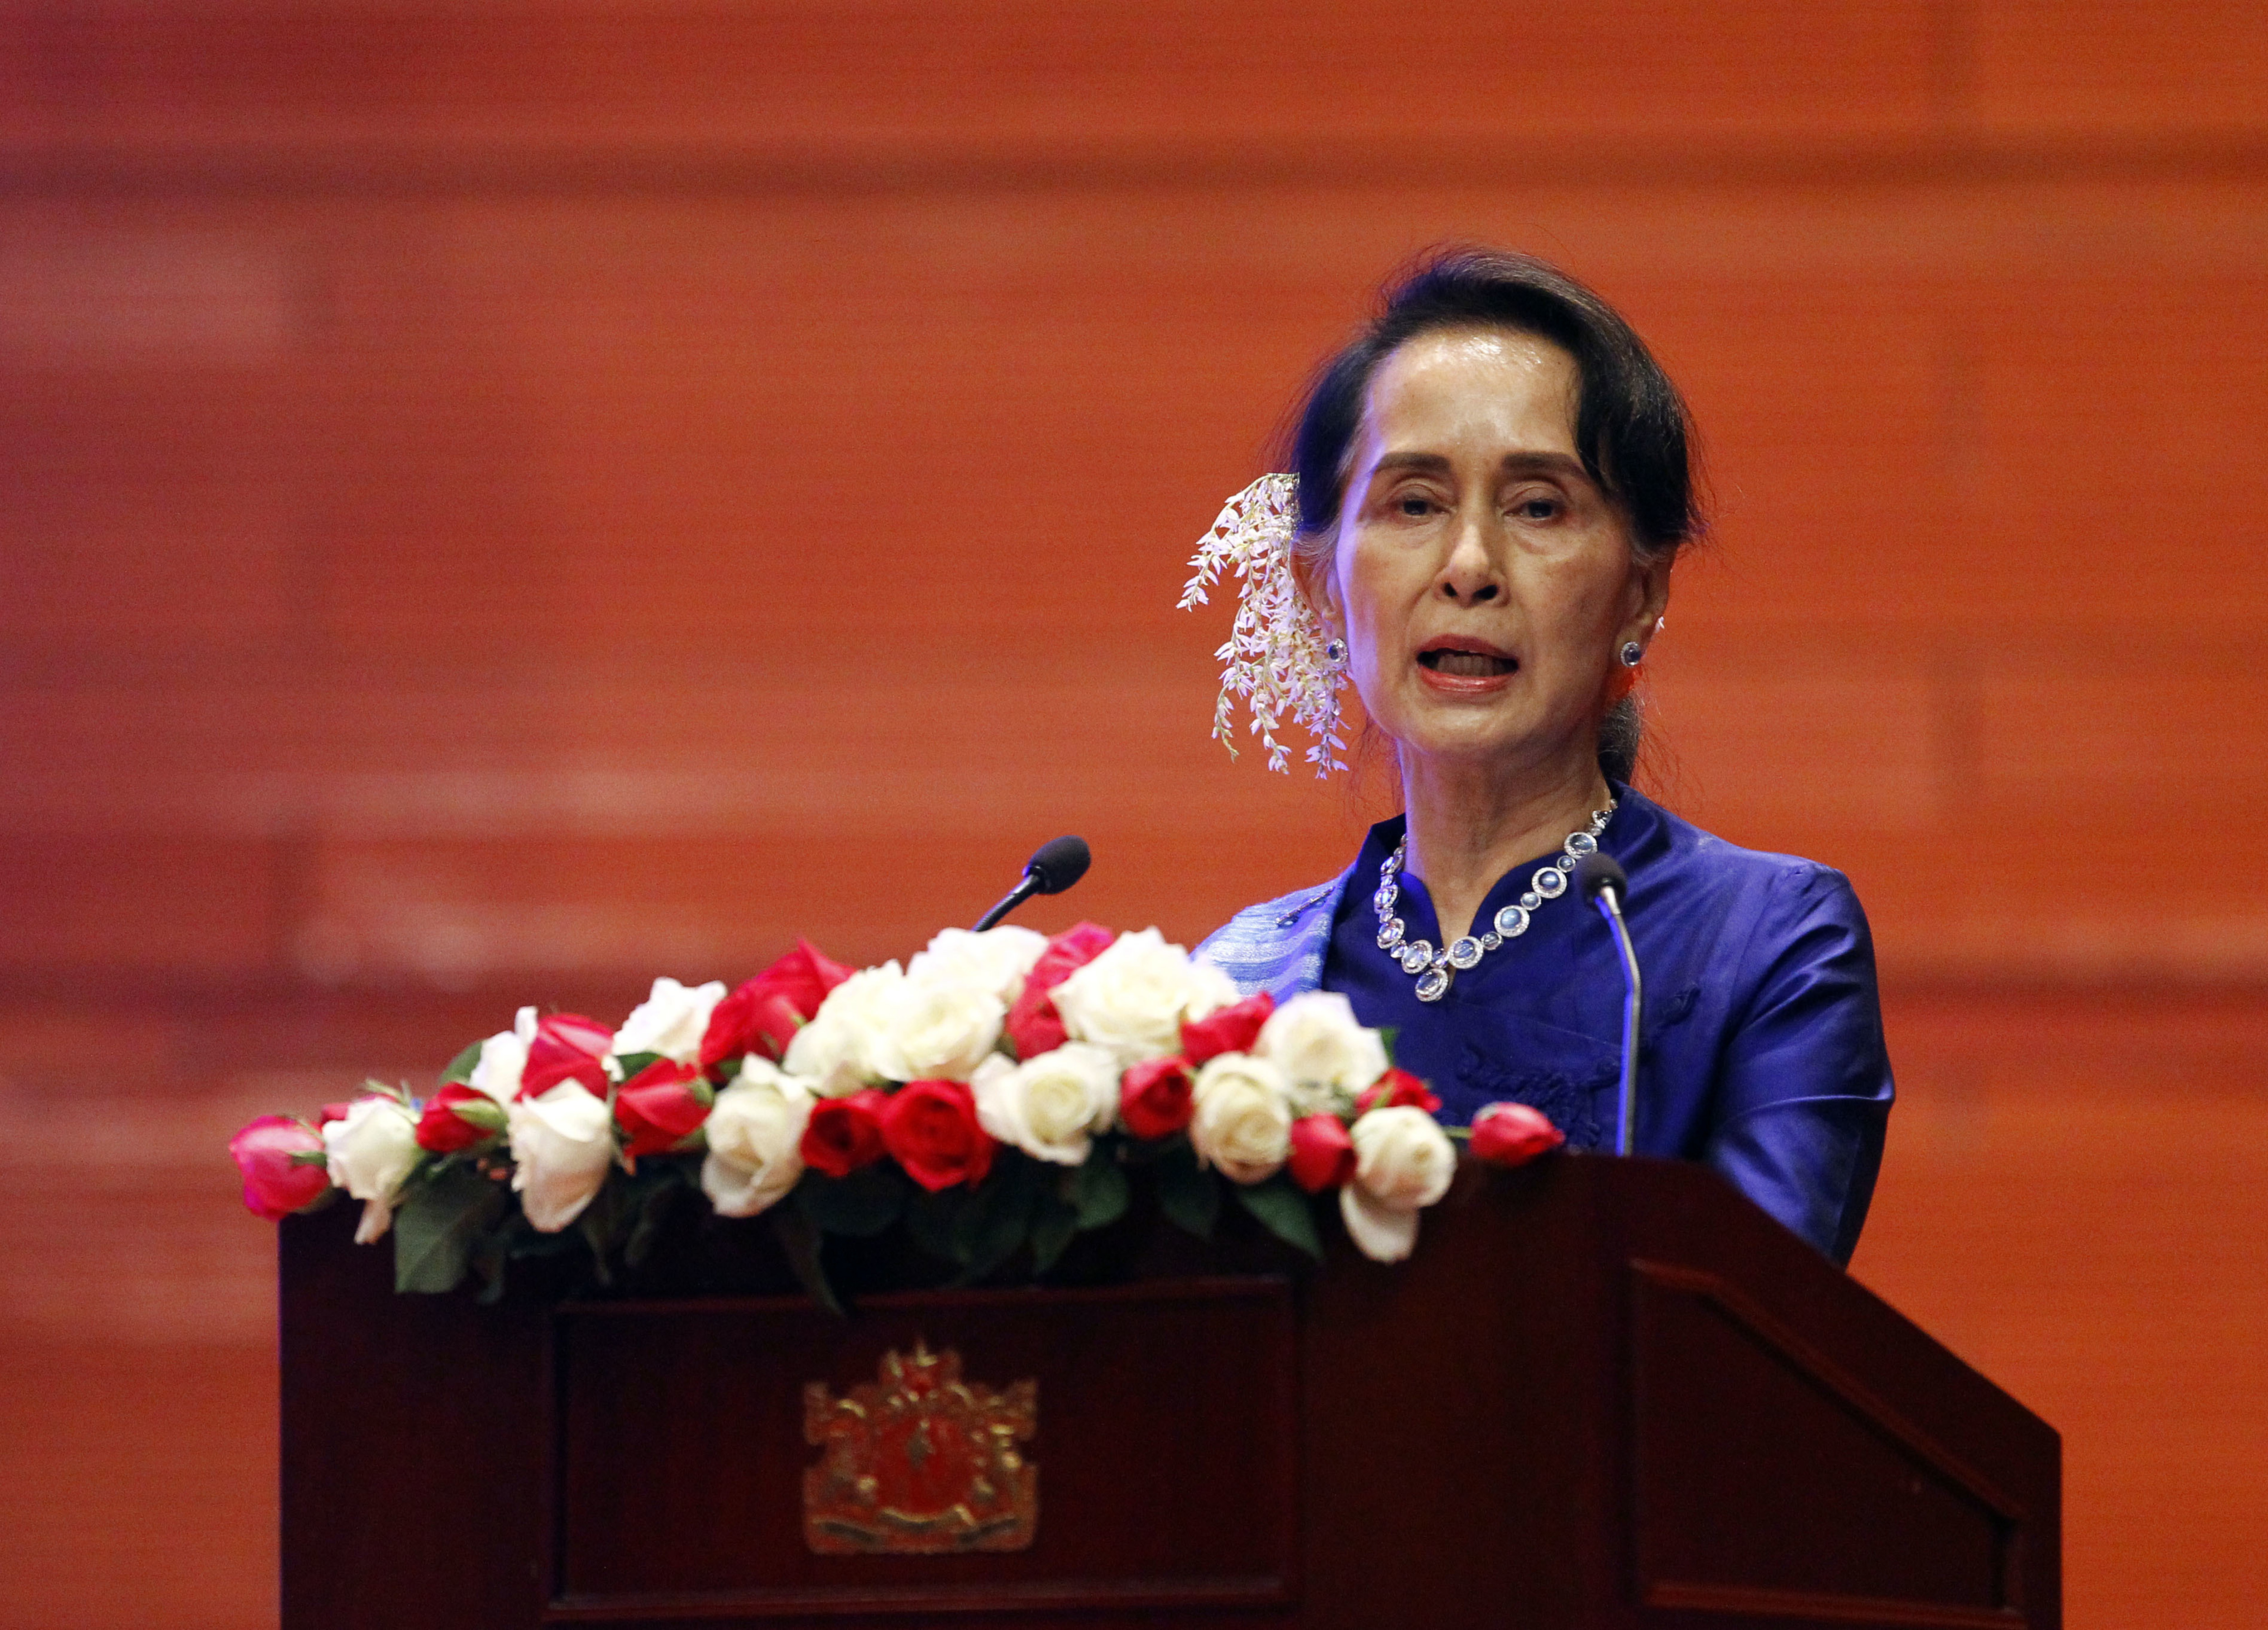 """Myanmar's leader Aung San Suu Kyi speaks during the signing ceremony of """"Nationwide Ceasefire Agreement"""" at Myanmar International Convention Center in Naypyitaw, Myanmar, Feb. 13, 2018."""